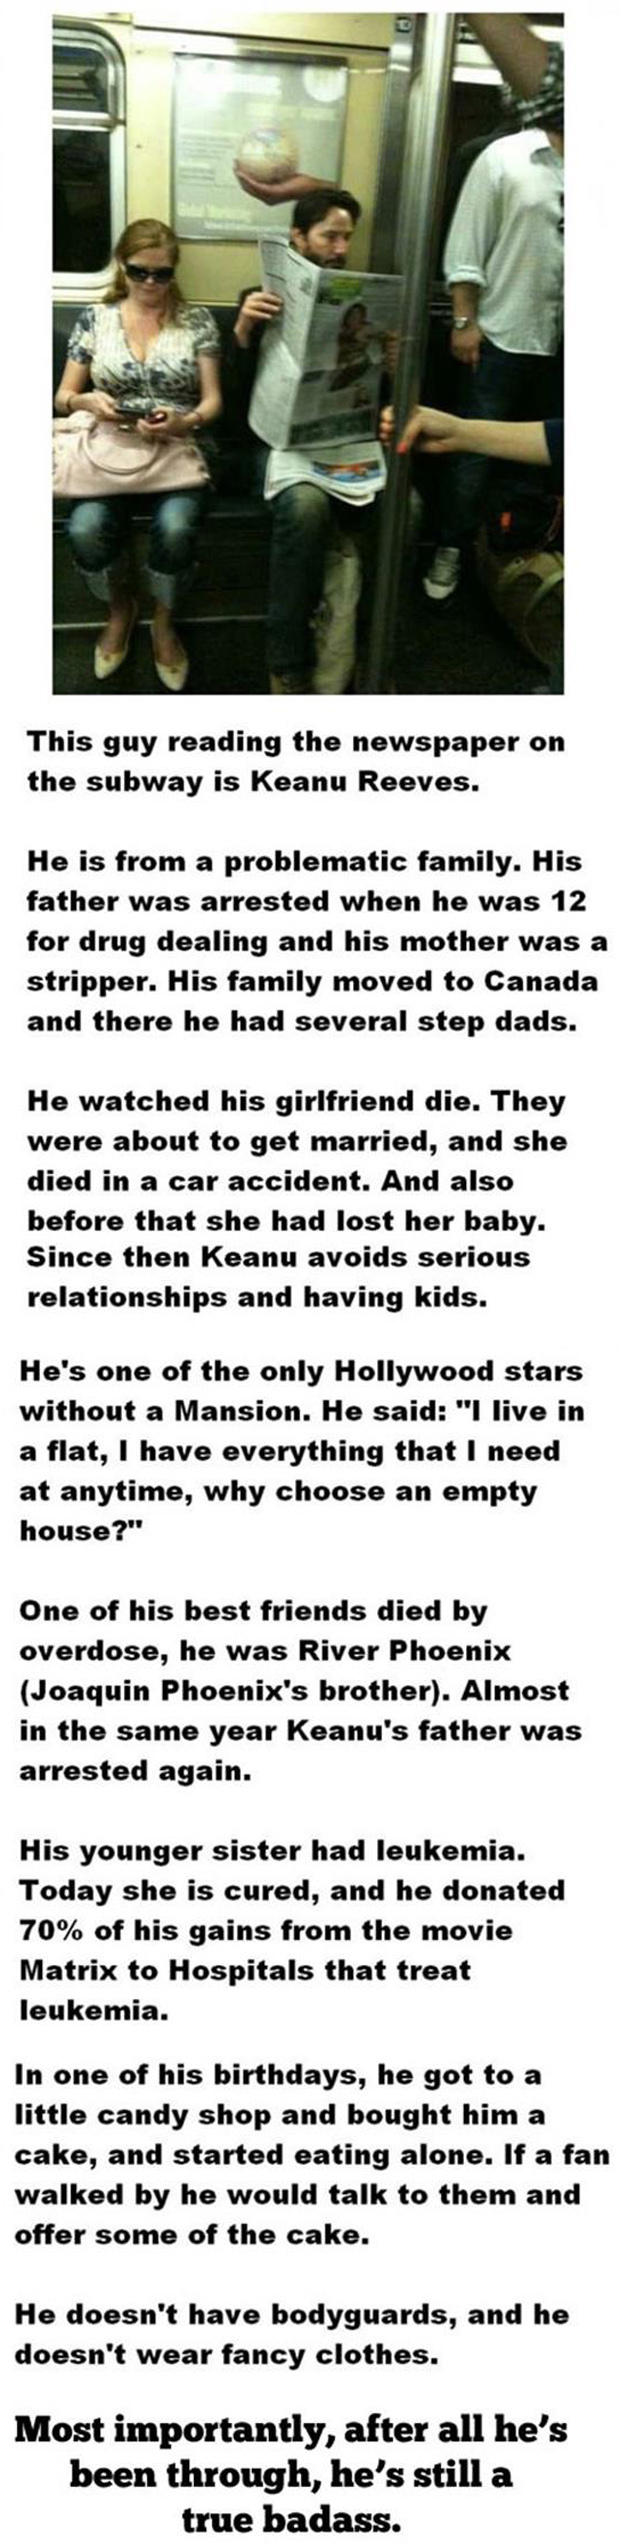 faith in humanity restored, keanu reeves